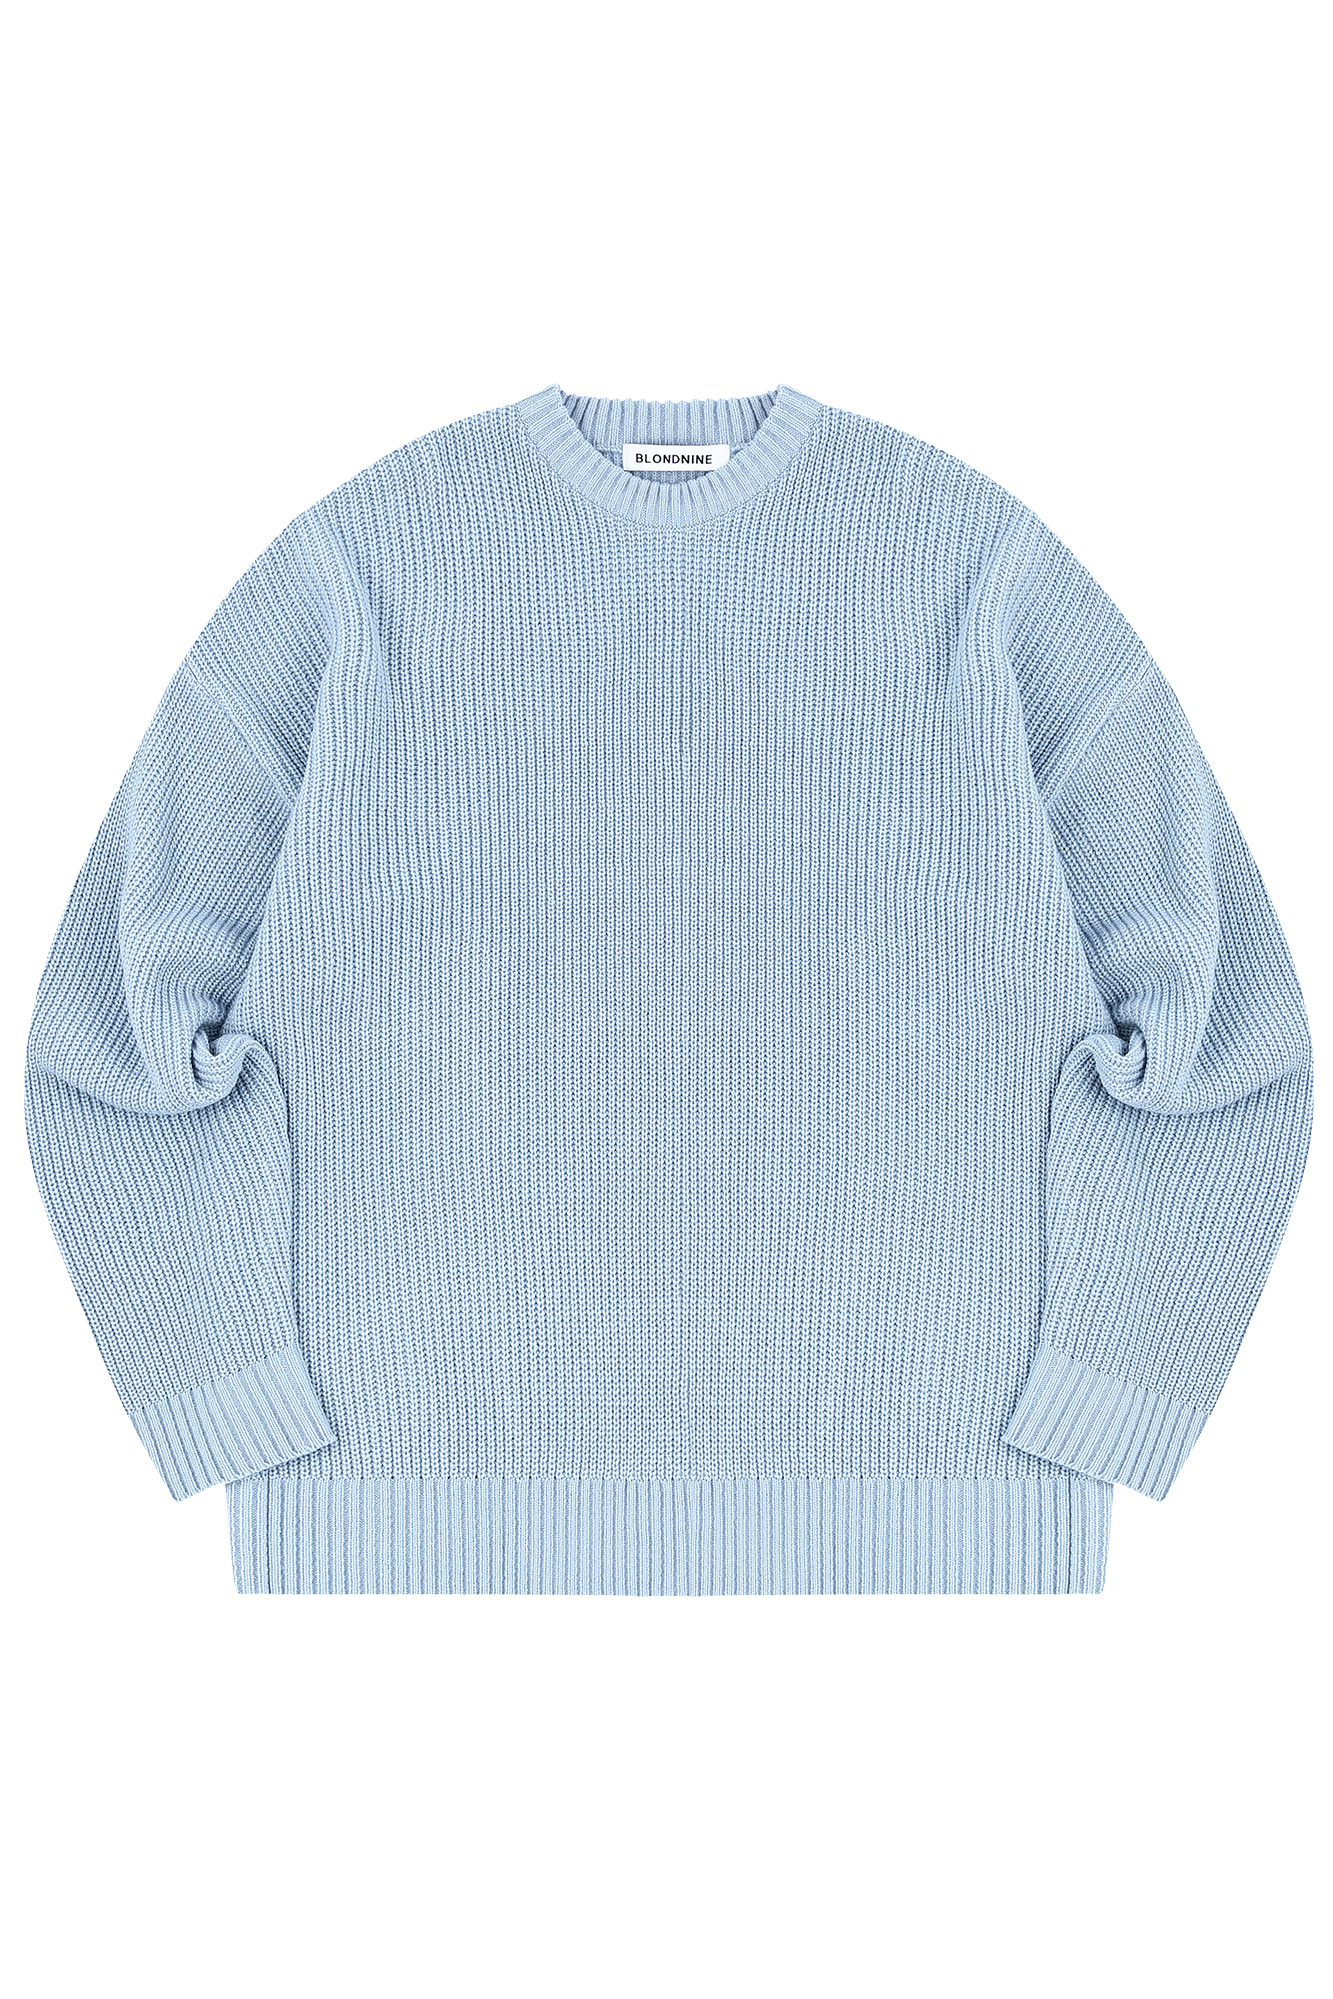 CREW NECK RIB KNIT SWEATER_SKY BLUE